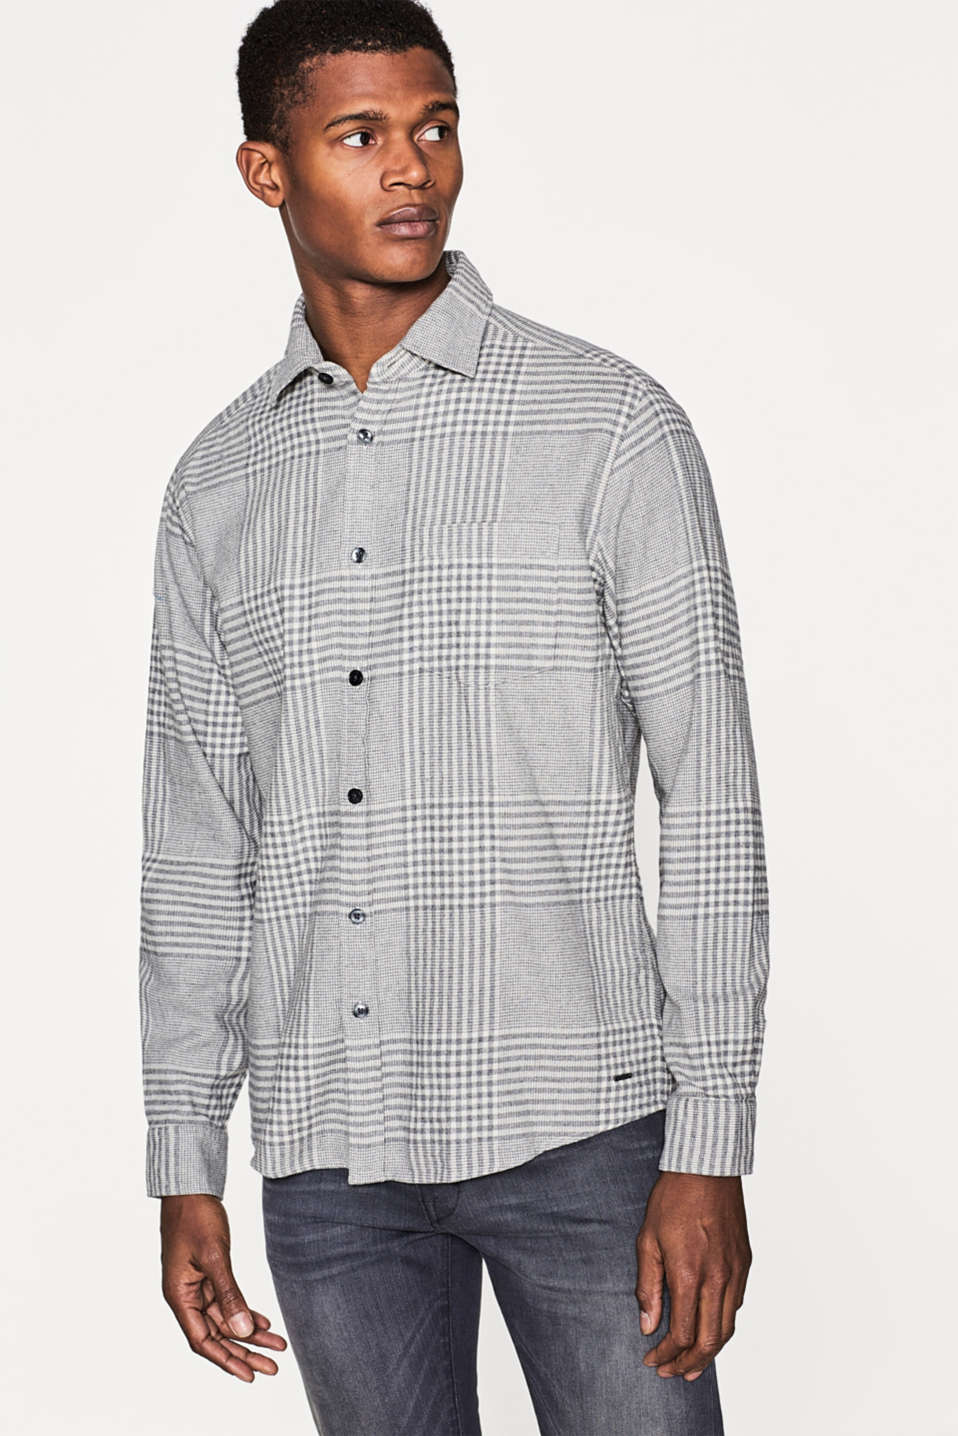 Esprit - Flannel shirt with a large check pattern